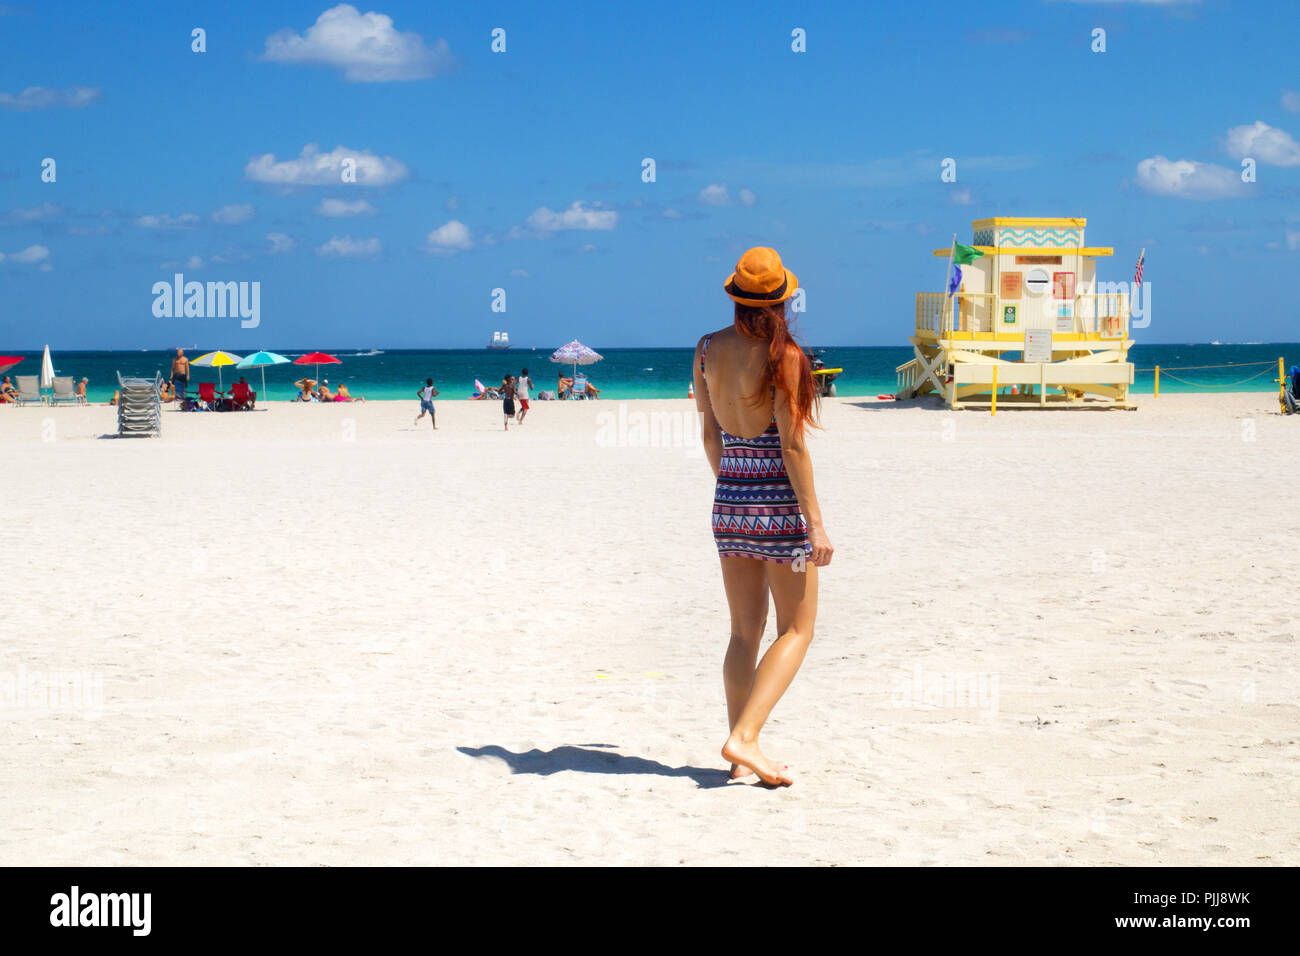 Miami Beach Florida, Hallouver park, attractive woman in mini dress walking towards Atlantic ocean Miami beach, rescue lifeguard art deco tower - Stock Image